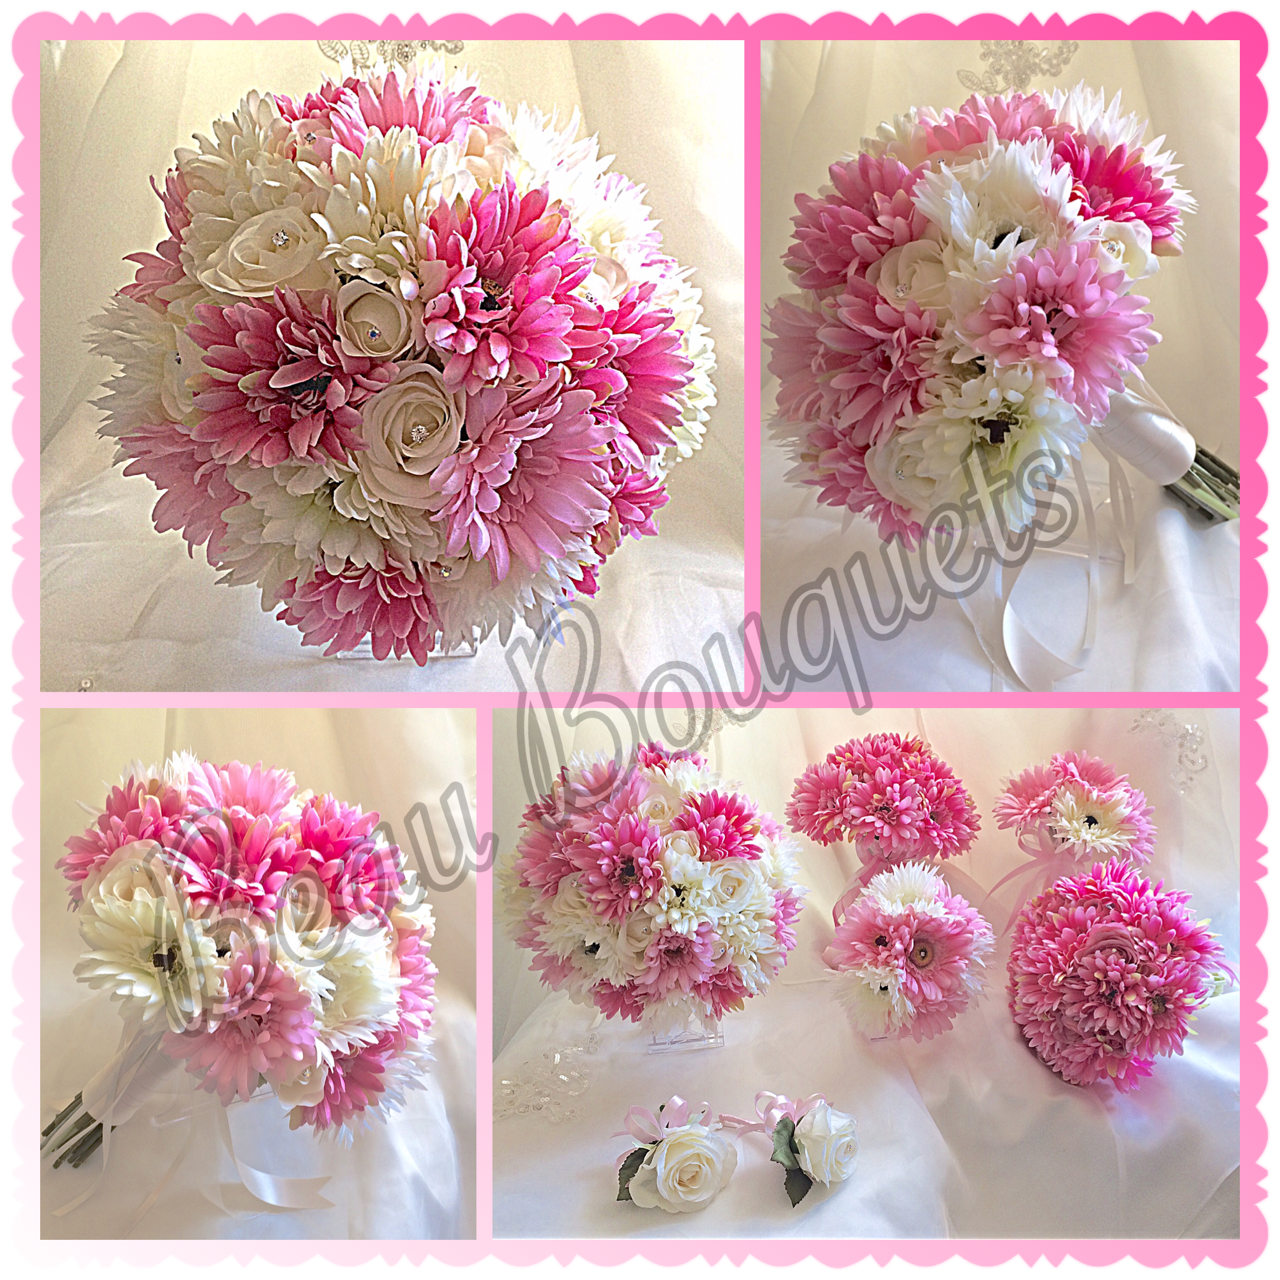 SWEET SUGAR - Gerbera bride bouquet package Cerise & bright pinks with white gerberas